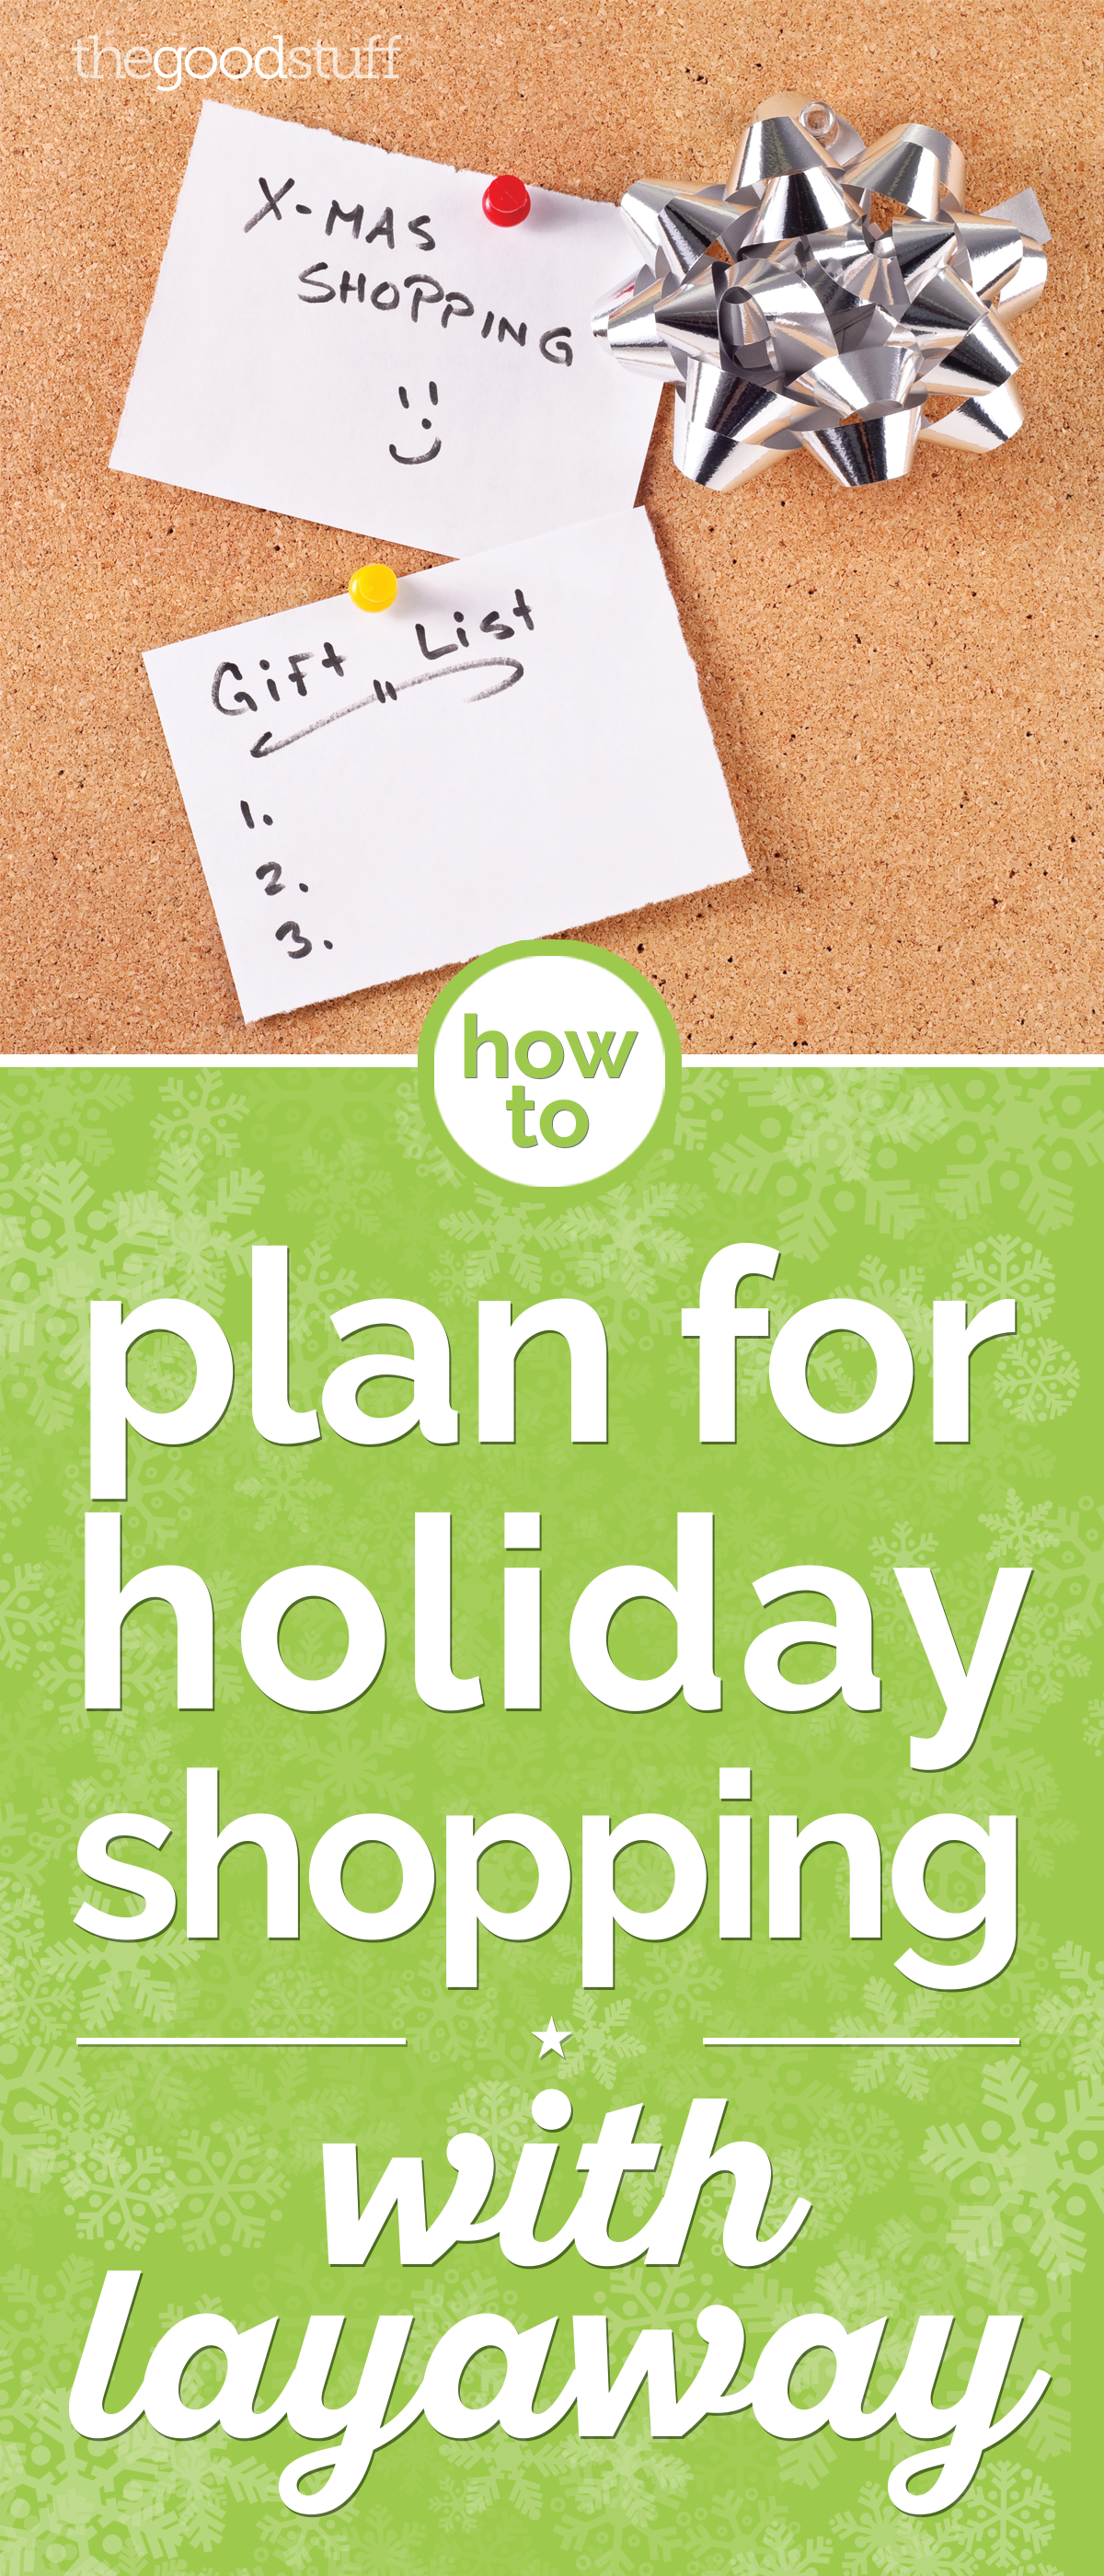 How to Plan for Holiday Shopping with Layaway | thegoodstuff